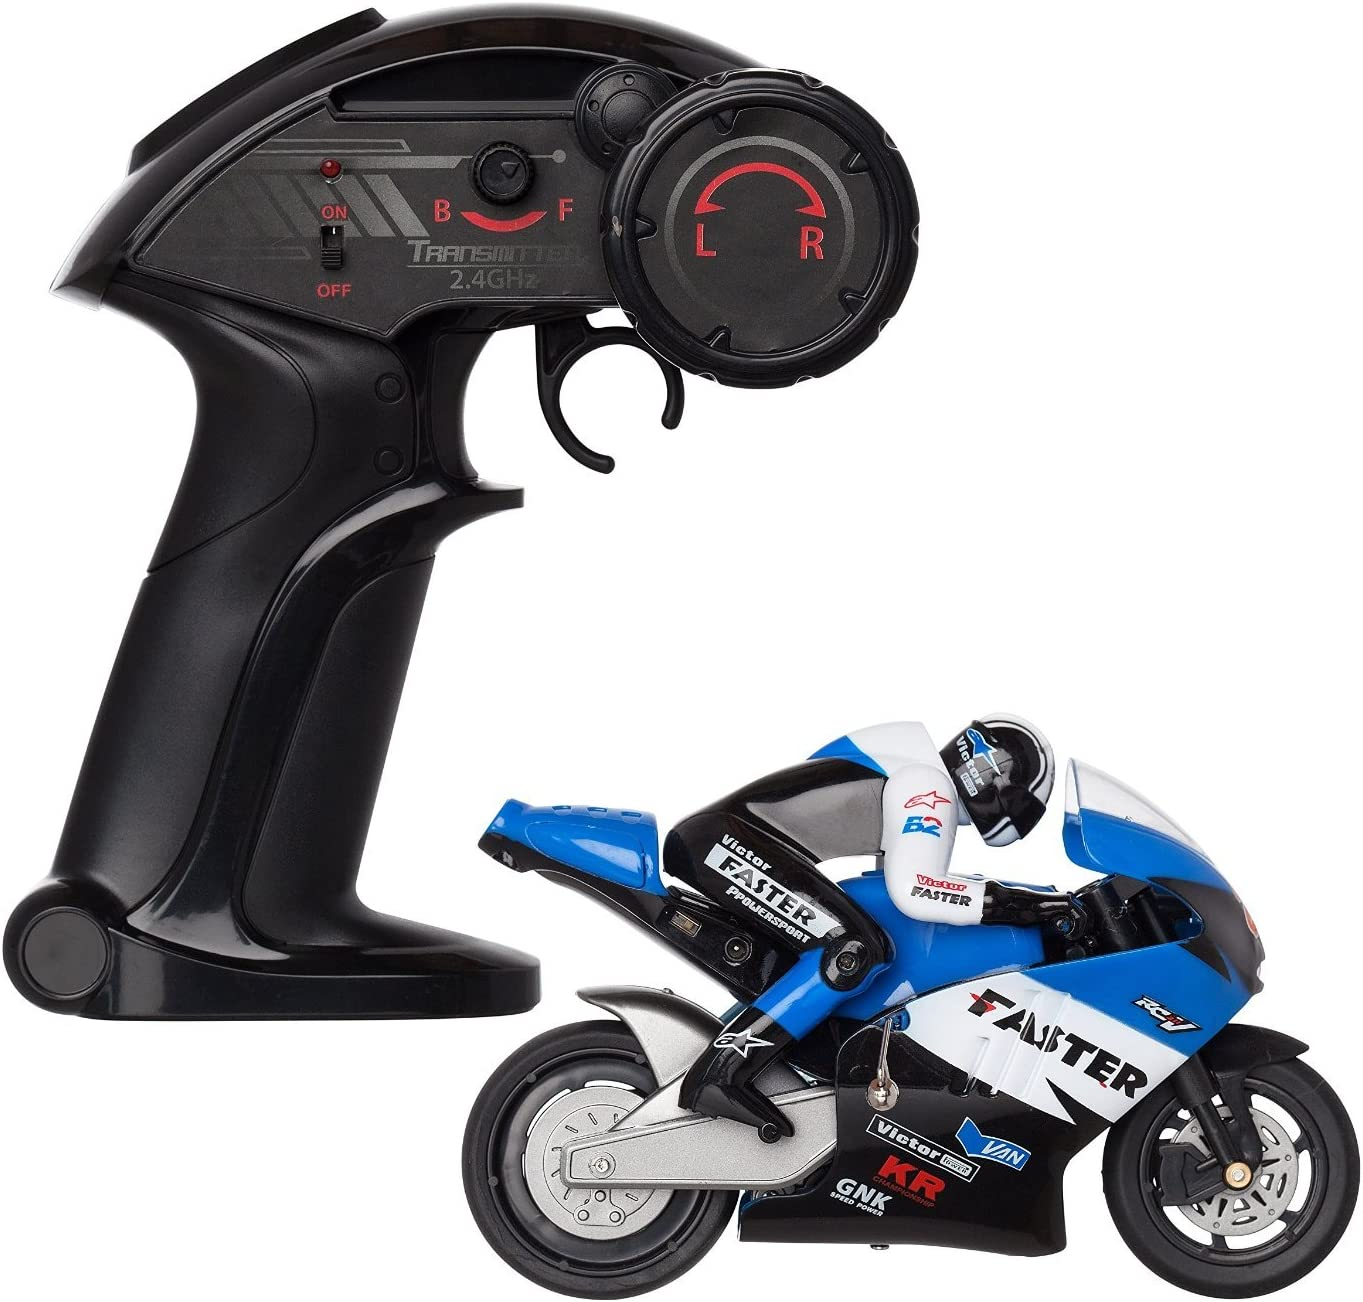 Top 10 Best Remote Control Motorcycles (2020 Reviews & Buying Guide) 7